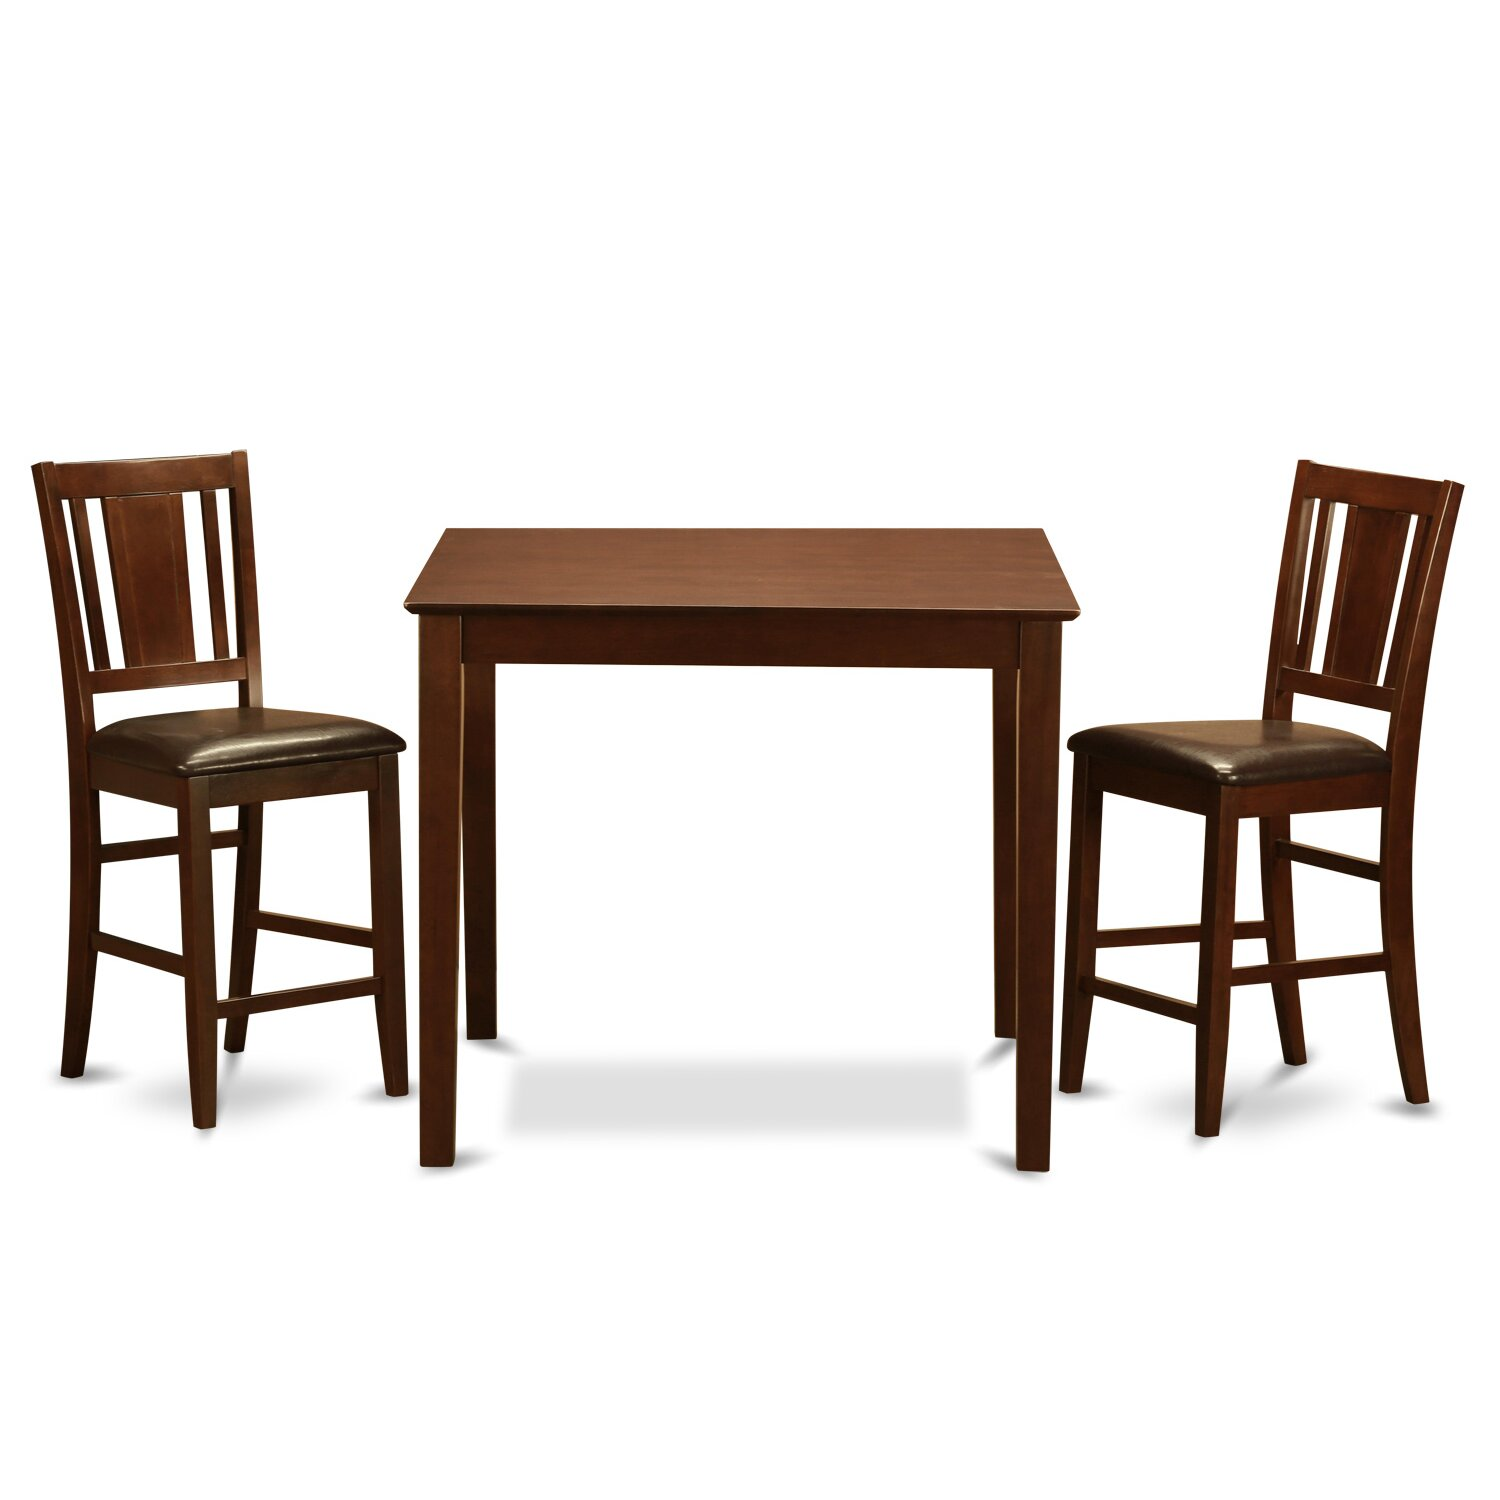 Wooden Importers 3 Piece Counter Height Pub Table Set